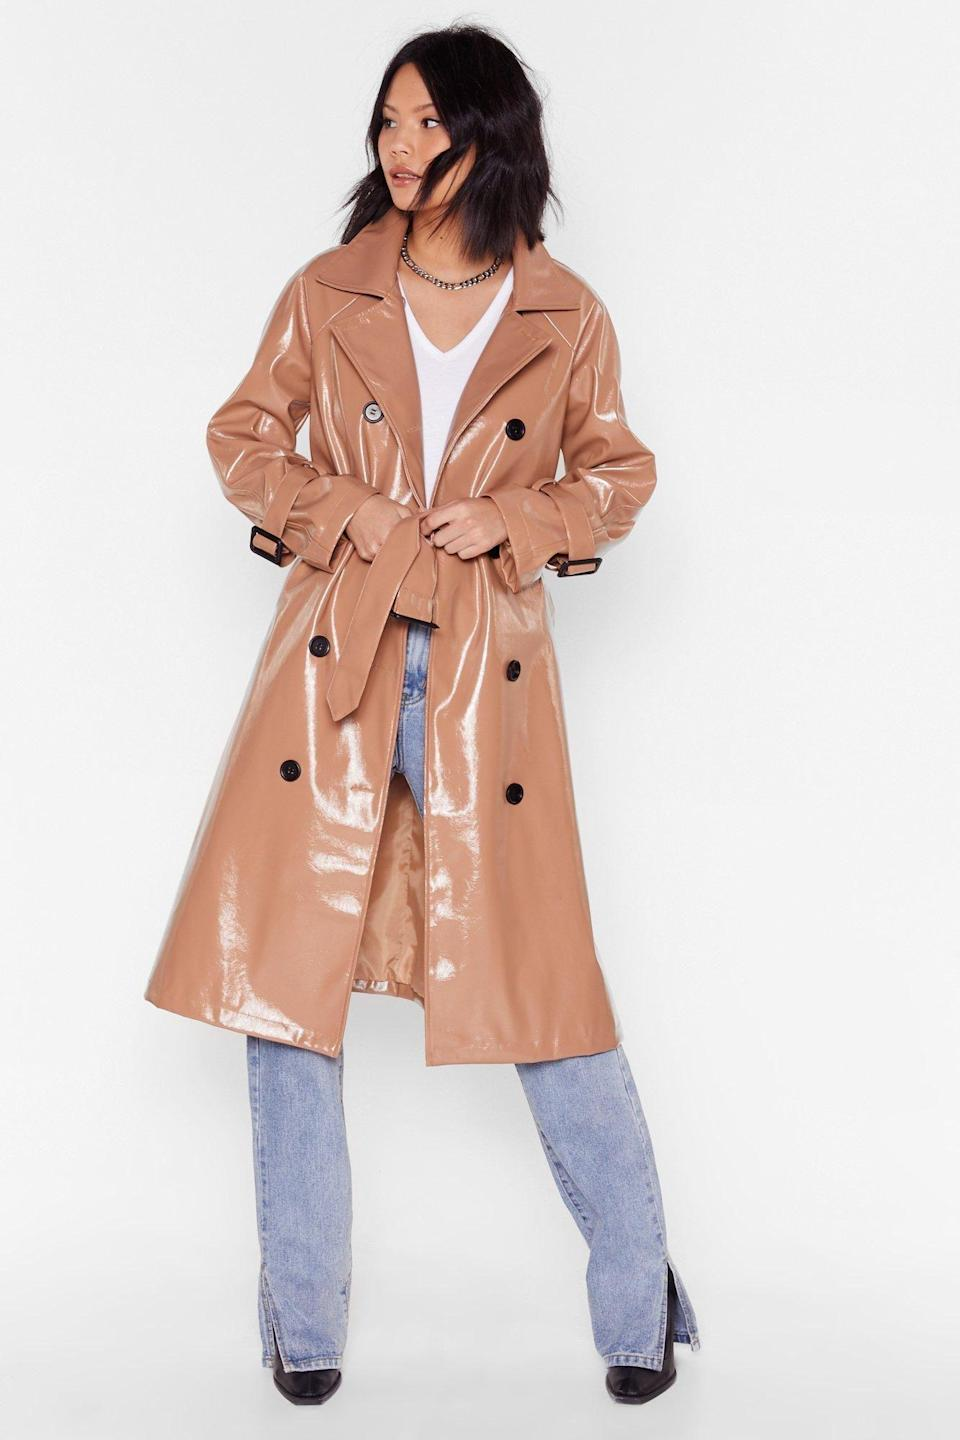 """<p><strong>Nasty Gal</strong></p><p>nastygal.com</p><p><strong>$59.00</strong></p><p><a href=""""https://go.redirectingat.com?id=74968X1596630&url=https%3A%2F%2Fwww.nastygal.com%2Fvinyl-countdown-belted-trench-coat%2FAGG56635-111-18.html%3Fgclid%3DEAIaIQobChMIovTOvLL36AIVhJ6fCh2_zwbiEAkYGCABEgKf9PD_BwE%26gclsrc%3Daw.ds%26istBid%3Dt%26istCompanyId%3Dc0be3c48-e653-4c39-b0ef-f608859d9f17%26istFeedId%3D6391ec2f-cb91-4734-b4e8-dc6e630eb98c%26istItemId%3Dipwiwawip&sref=https%3A%2F%2Fwww.cosmopolitan.com%2Fstyle-beauty%2Ffashion%2Fg10327302%2Fcute-fall-outfits%2F"""" rel=""""nofollow noopener"""" target=""""_blank"""" data-ylk=""""slk:Shop Now"""" class=""""link rapid-noclick-resp"""">Shop Now</a></p><p>Your raincoat game will be upgraded with a shiny vinyl trench. Just add a classic white <a href=""""https://www.cosmopolitan.com/style-beauty/fashion/g32390764/best-t-shirts-for-women/"""" rel=""""nofollow noopener"""" target=""""_blank"""" data-ylk=""""slk:T-shirt"""" class=""""link rapid-noclick-resp"""">T-shirt</a> and jeans to pull off a very cute rainy-day 'fit. </p>"""